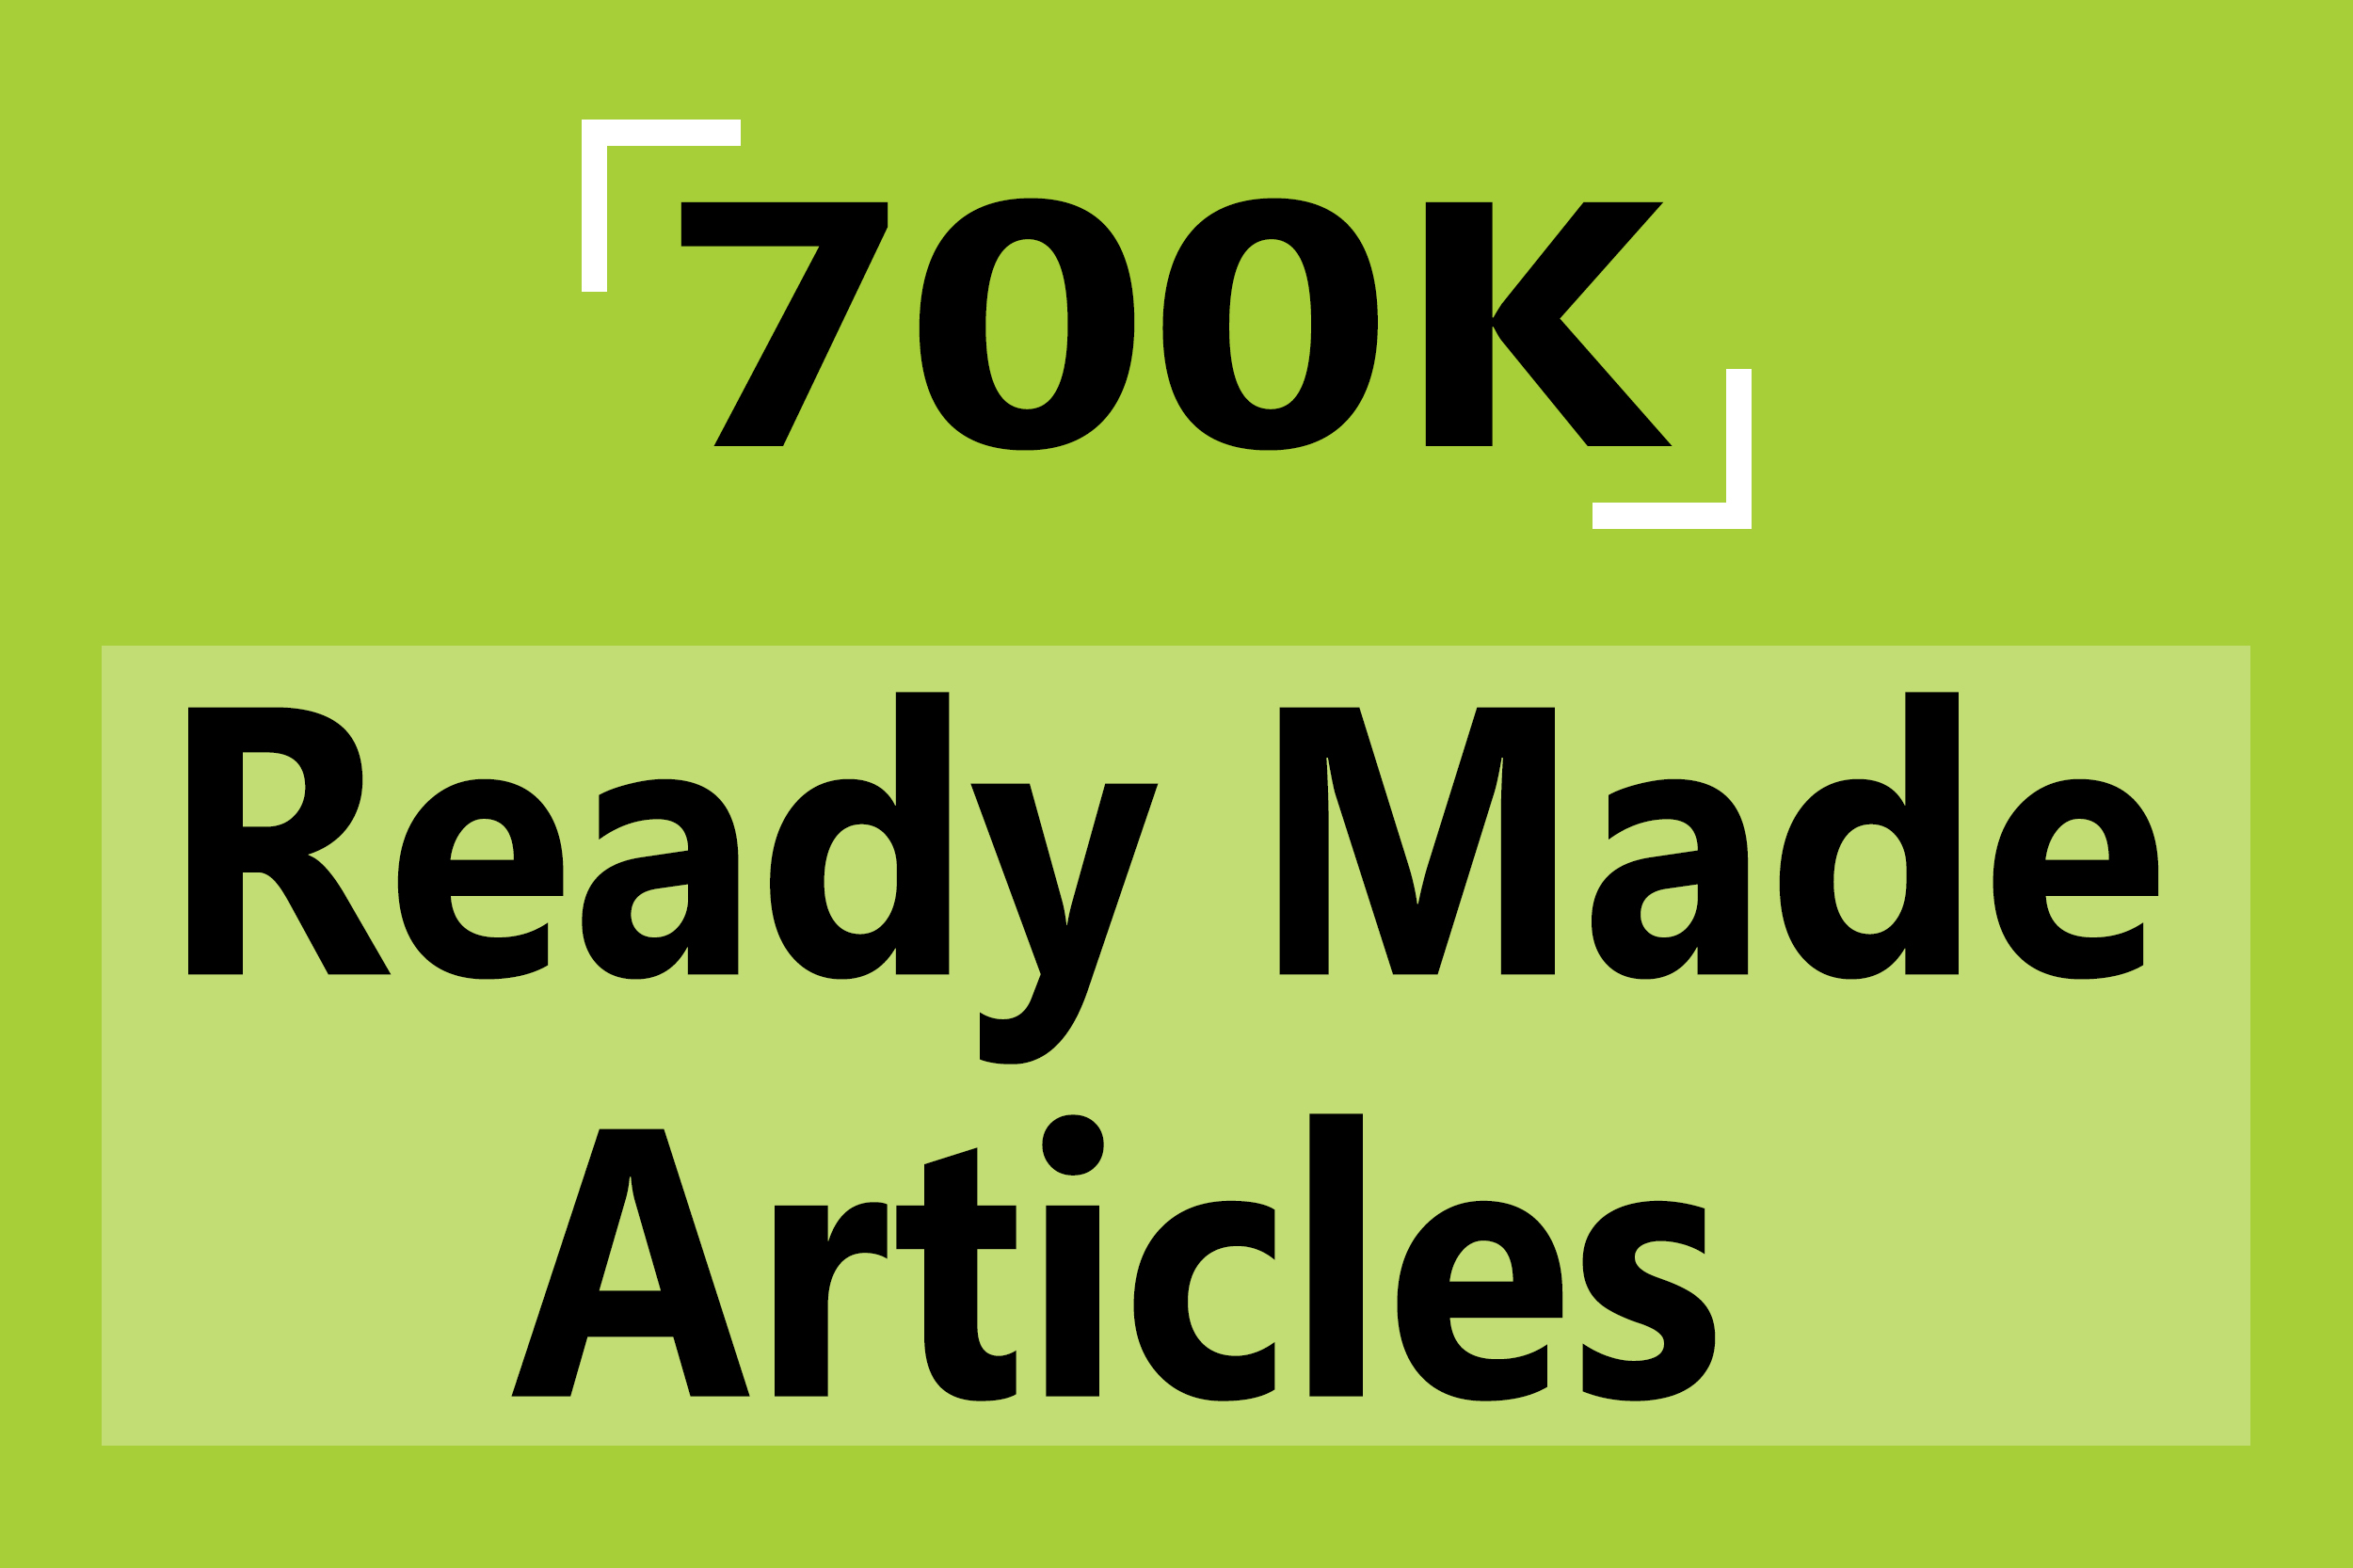 700K Ready Made Articles Pack In Different Quality Content Niche